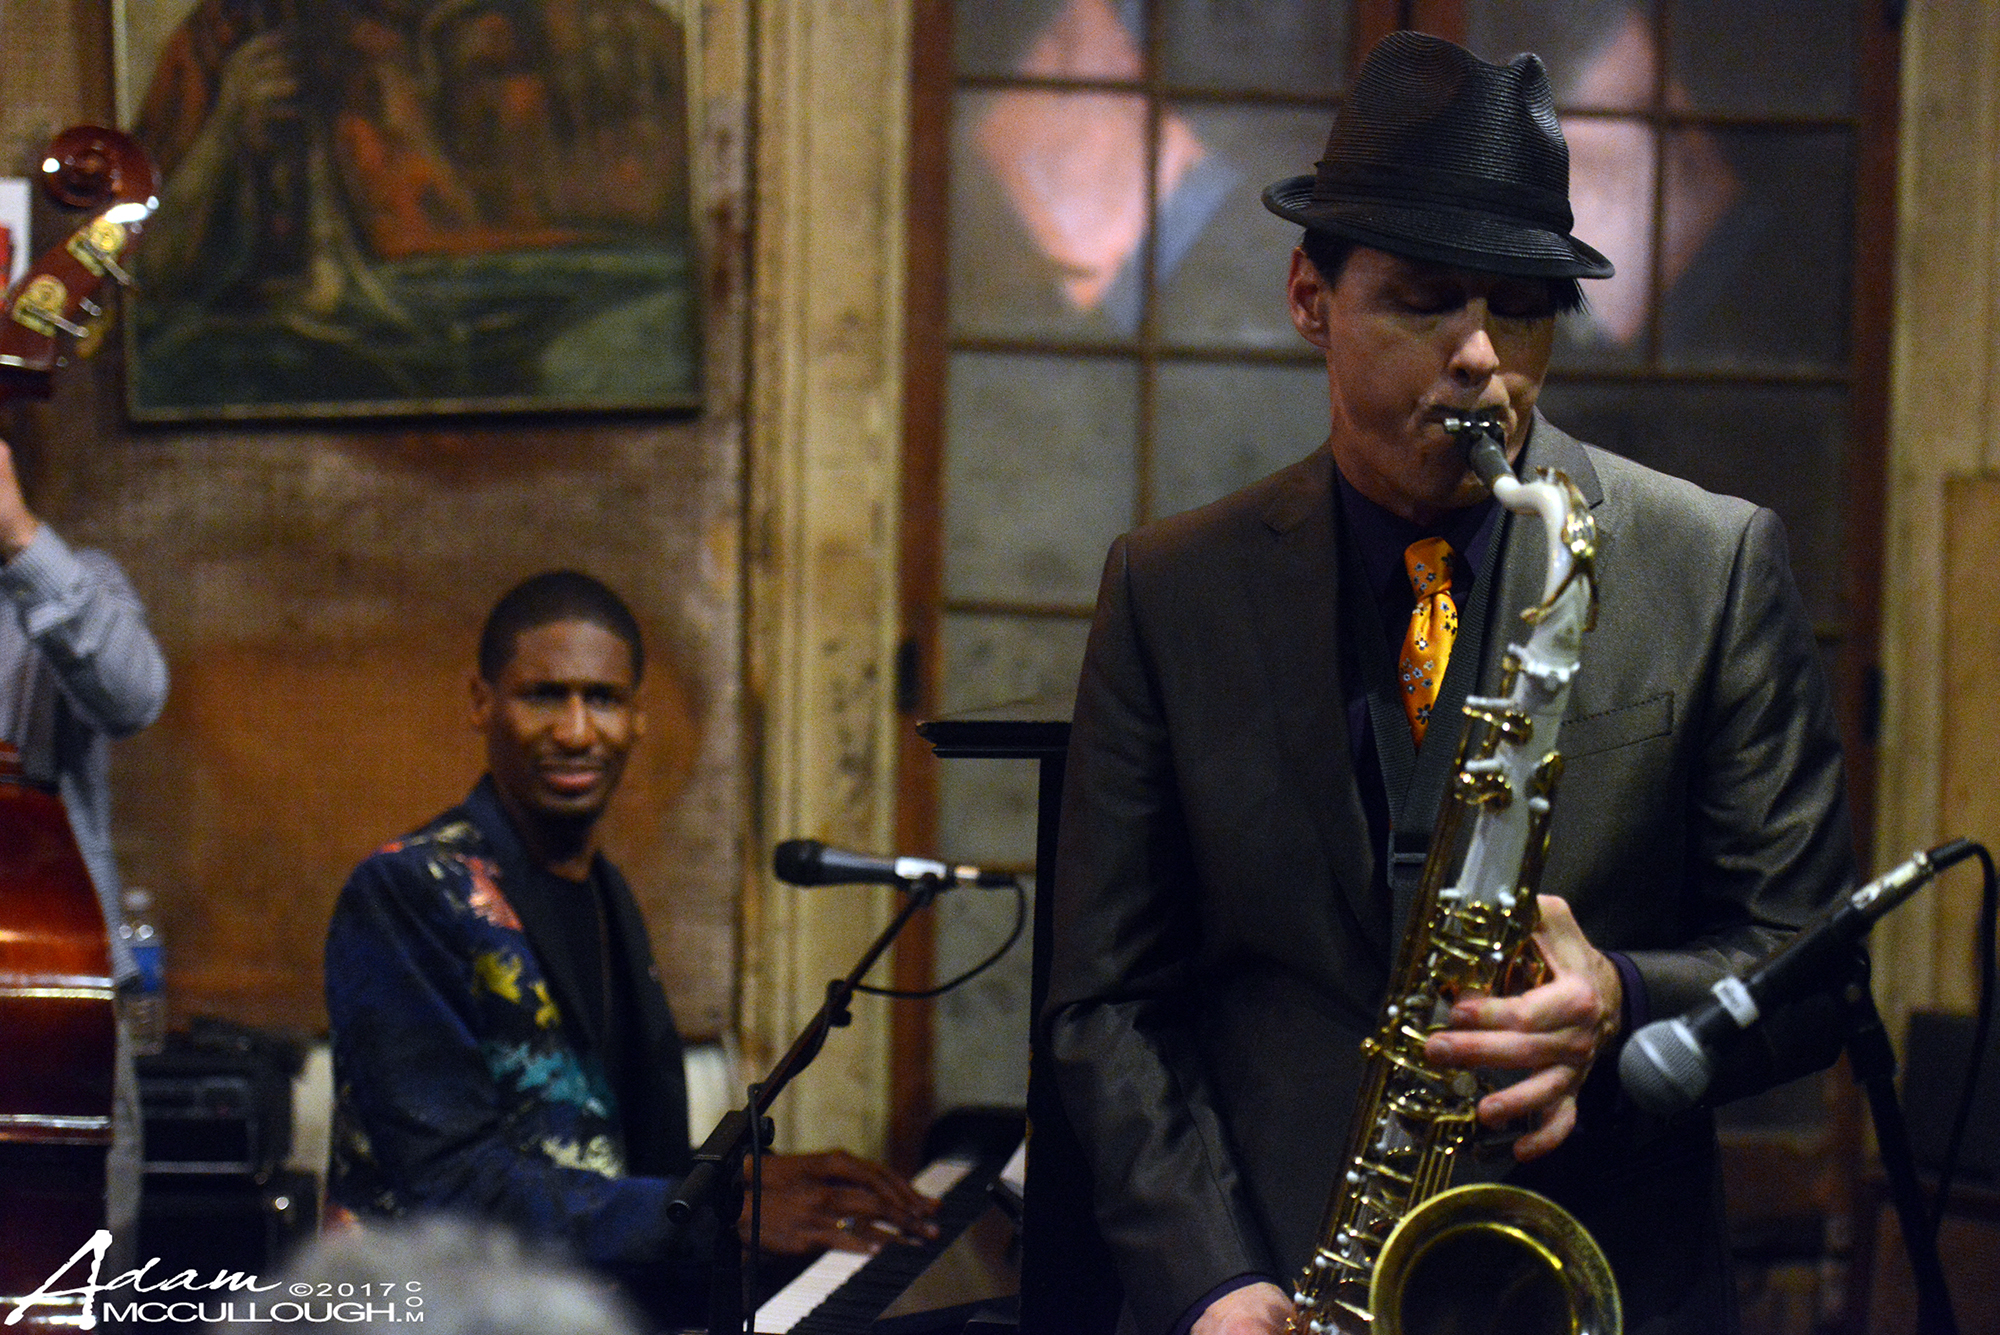 Clint Maedgen of The Preservation Hall Jazz Band & Jon Batiste. Photo courtesy of Adam McCullough